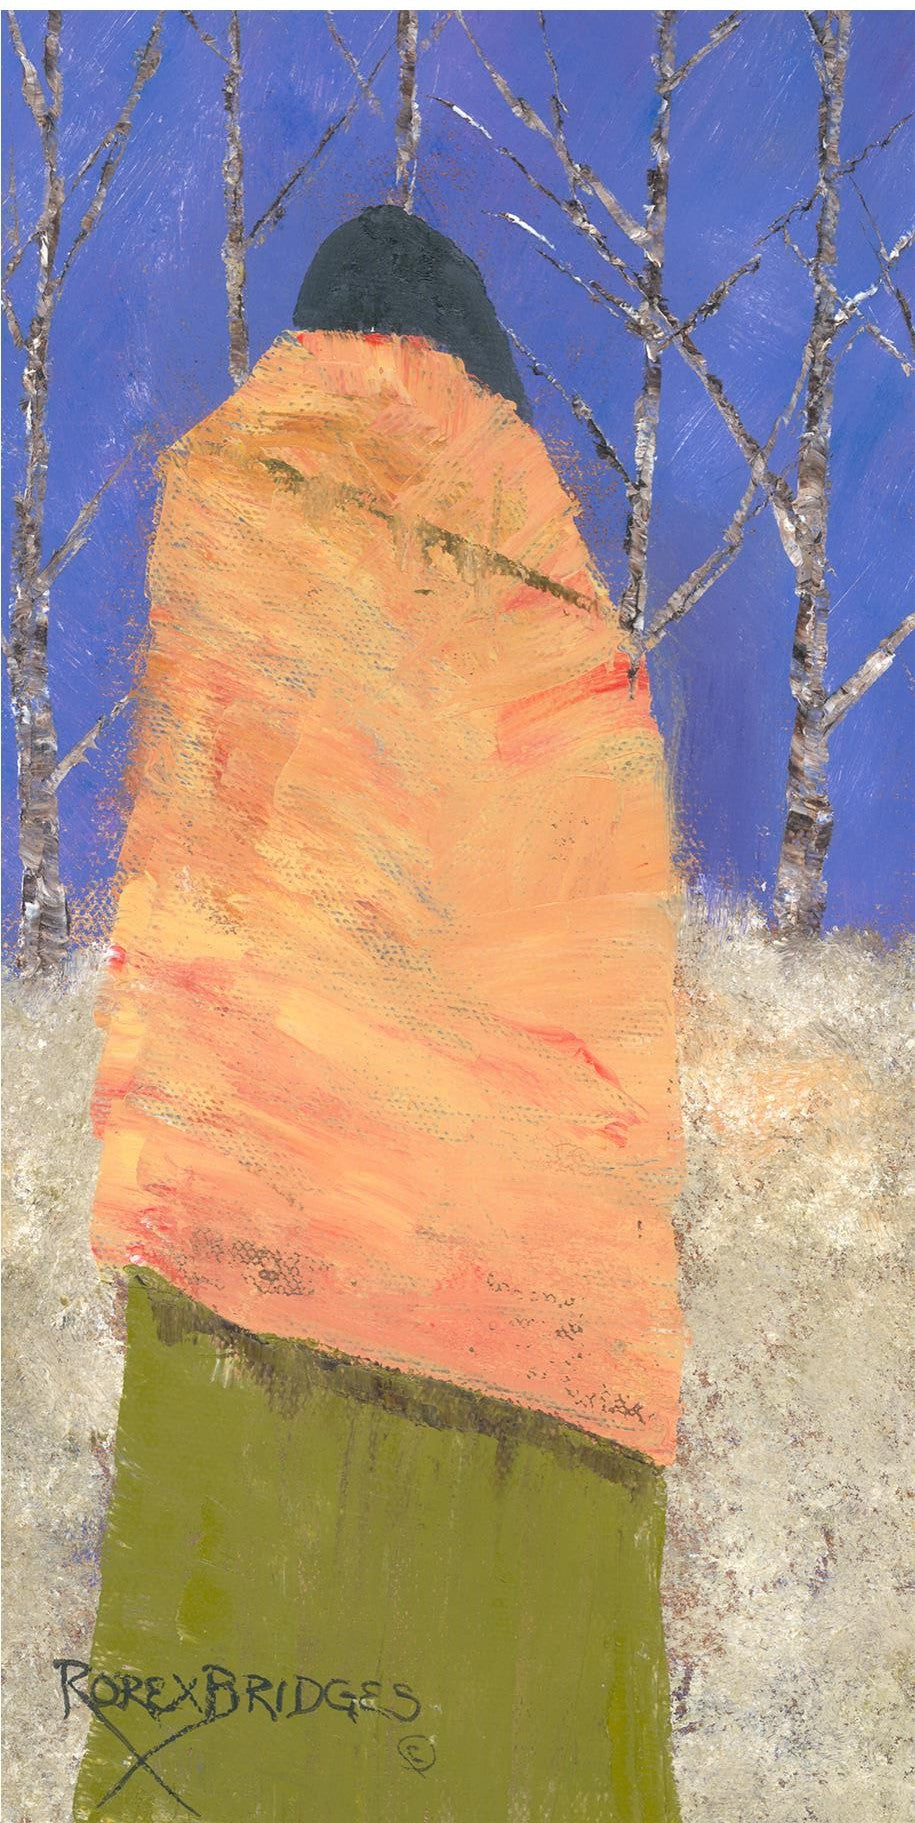 BIRCH TREES BEHIND WOMAN WITH YELLOW BLANKET